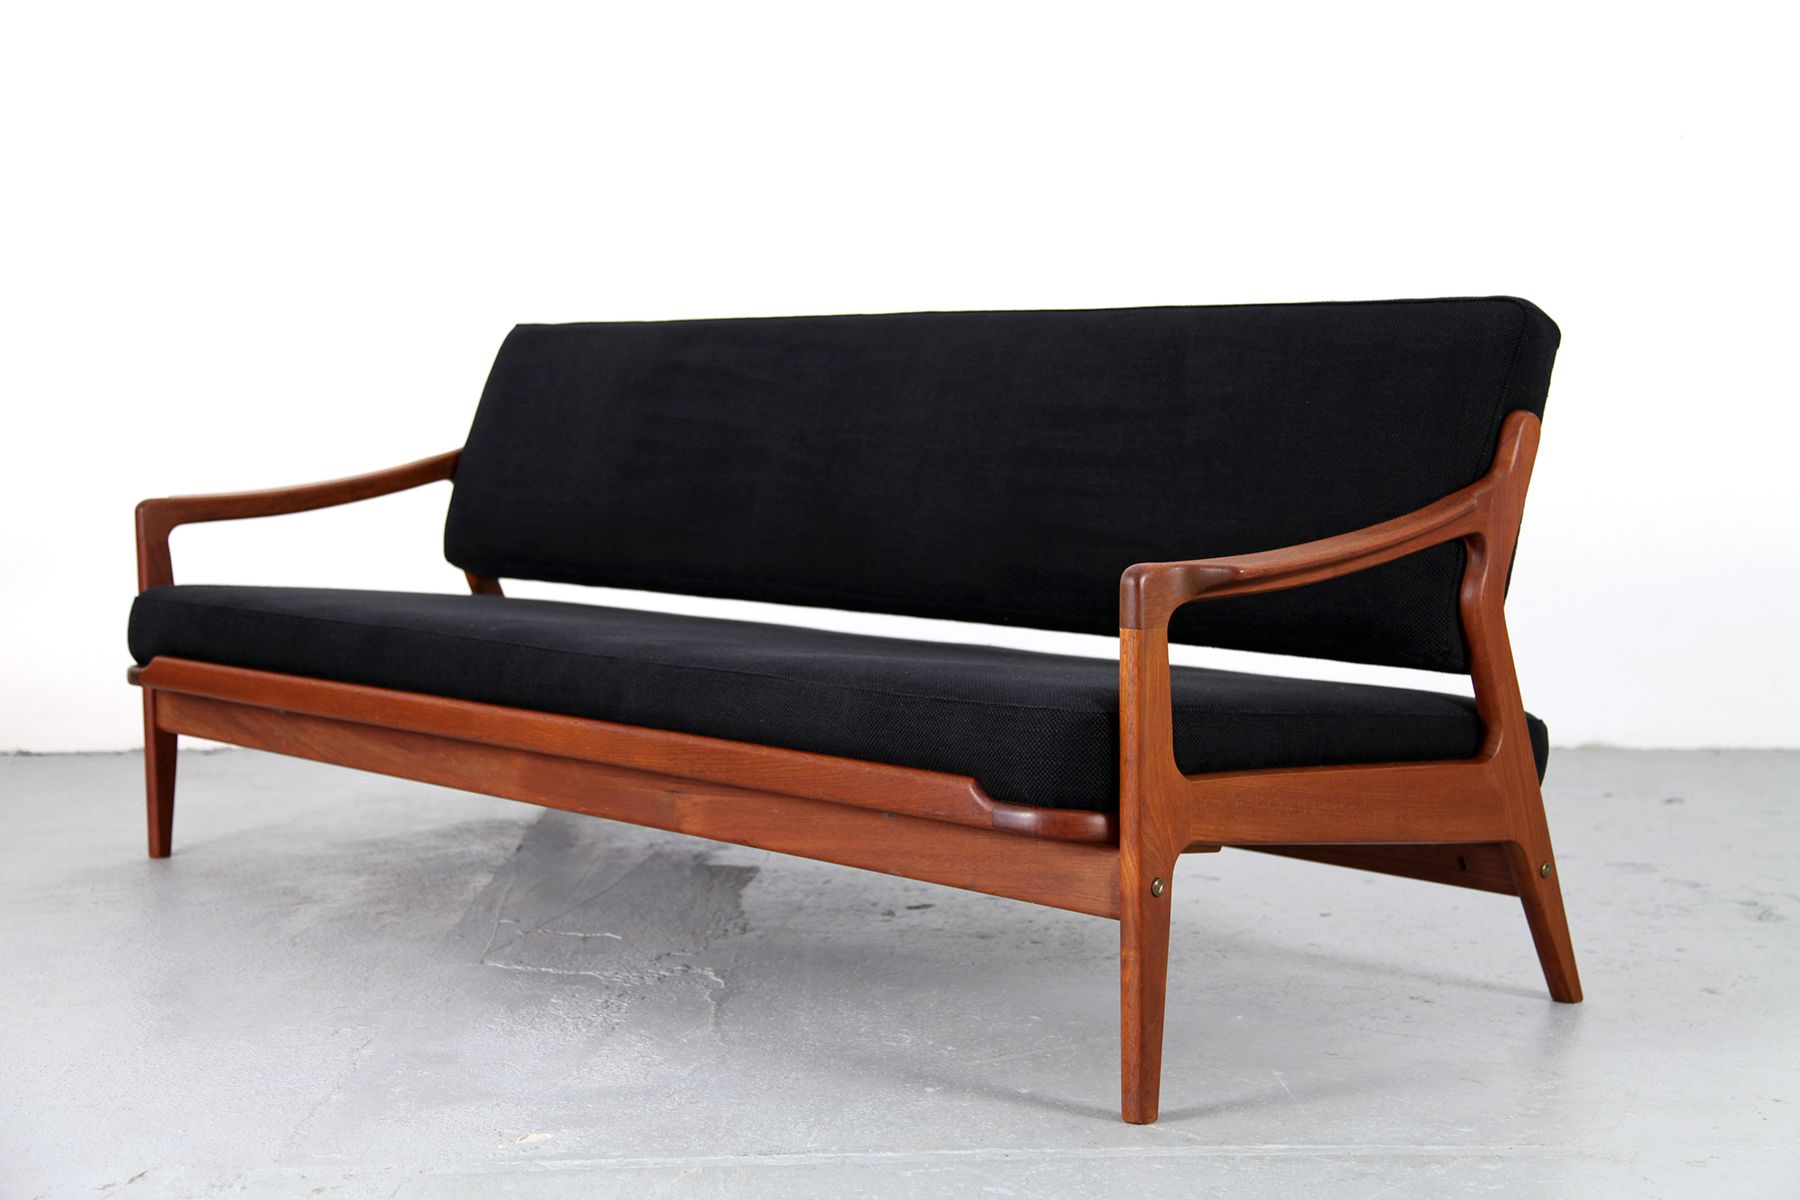 3 seater teak sofa with daybed feature by arne wahl iversen 1960s for sale at pamono. Black Bedroom Furniture Sets. Home Design Ideas